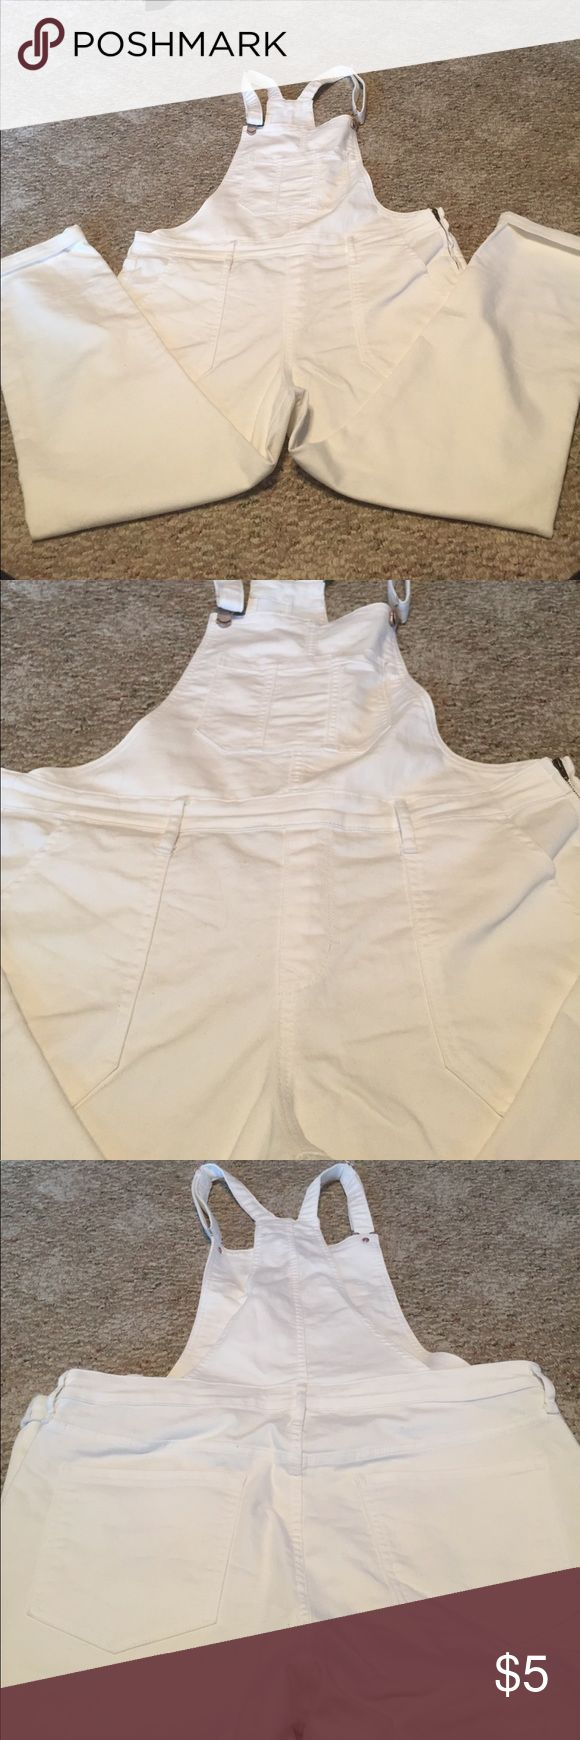 White Overalls Comfortable and stretchy white overalls from Old Navy. Has large pockets in front and back on pants, also large pocket on chest. The straps can be adjusted and there are belt loops! Old Navy Jeans Overalls